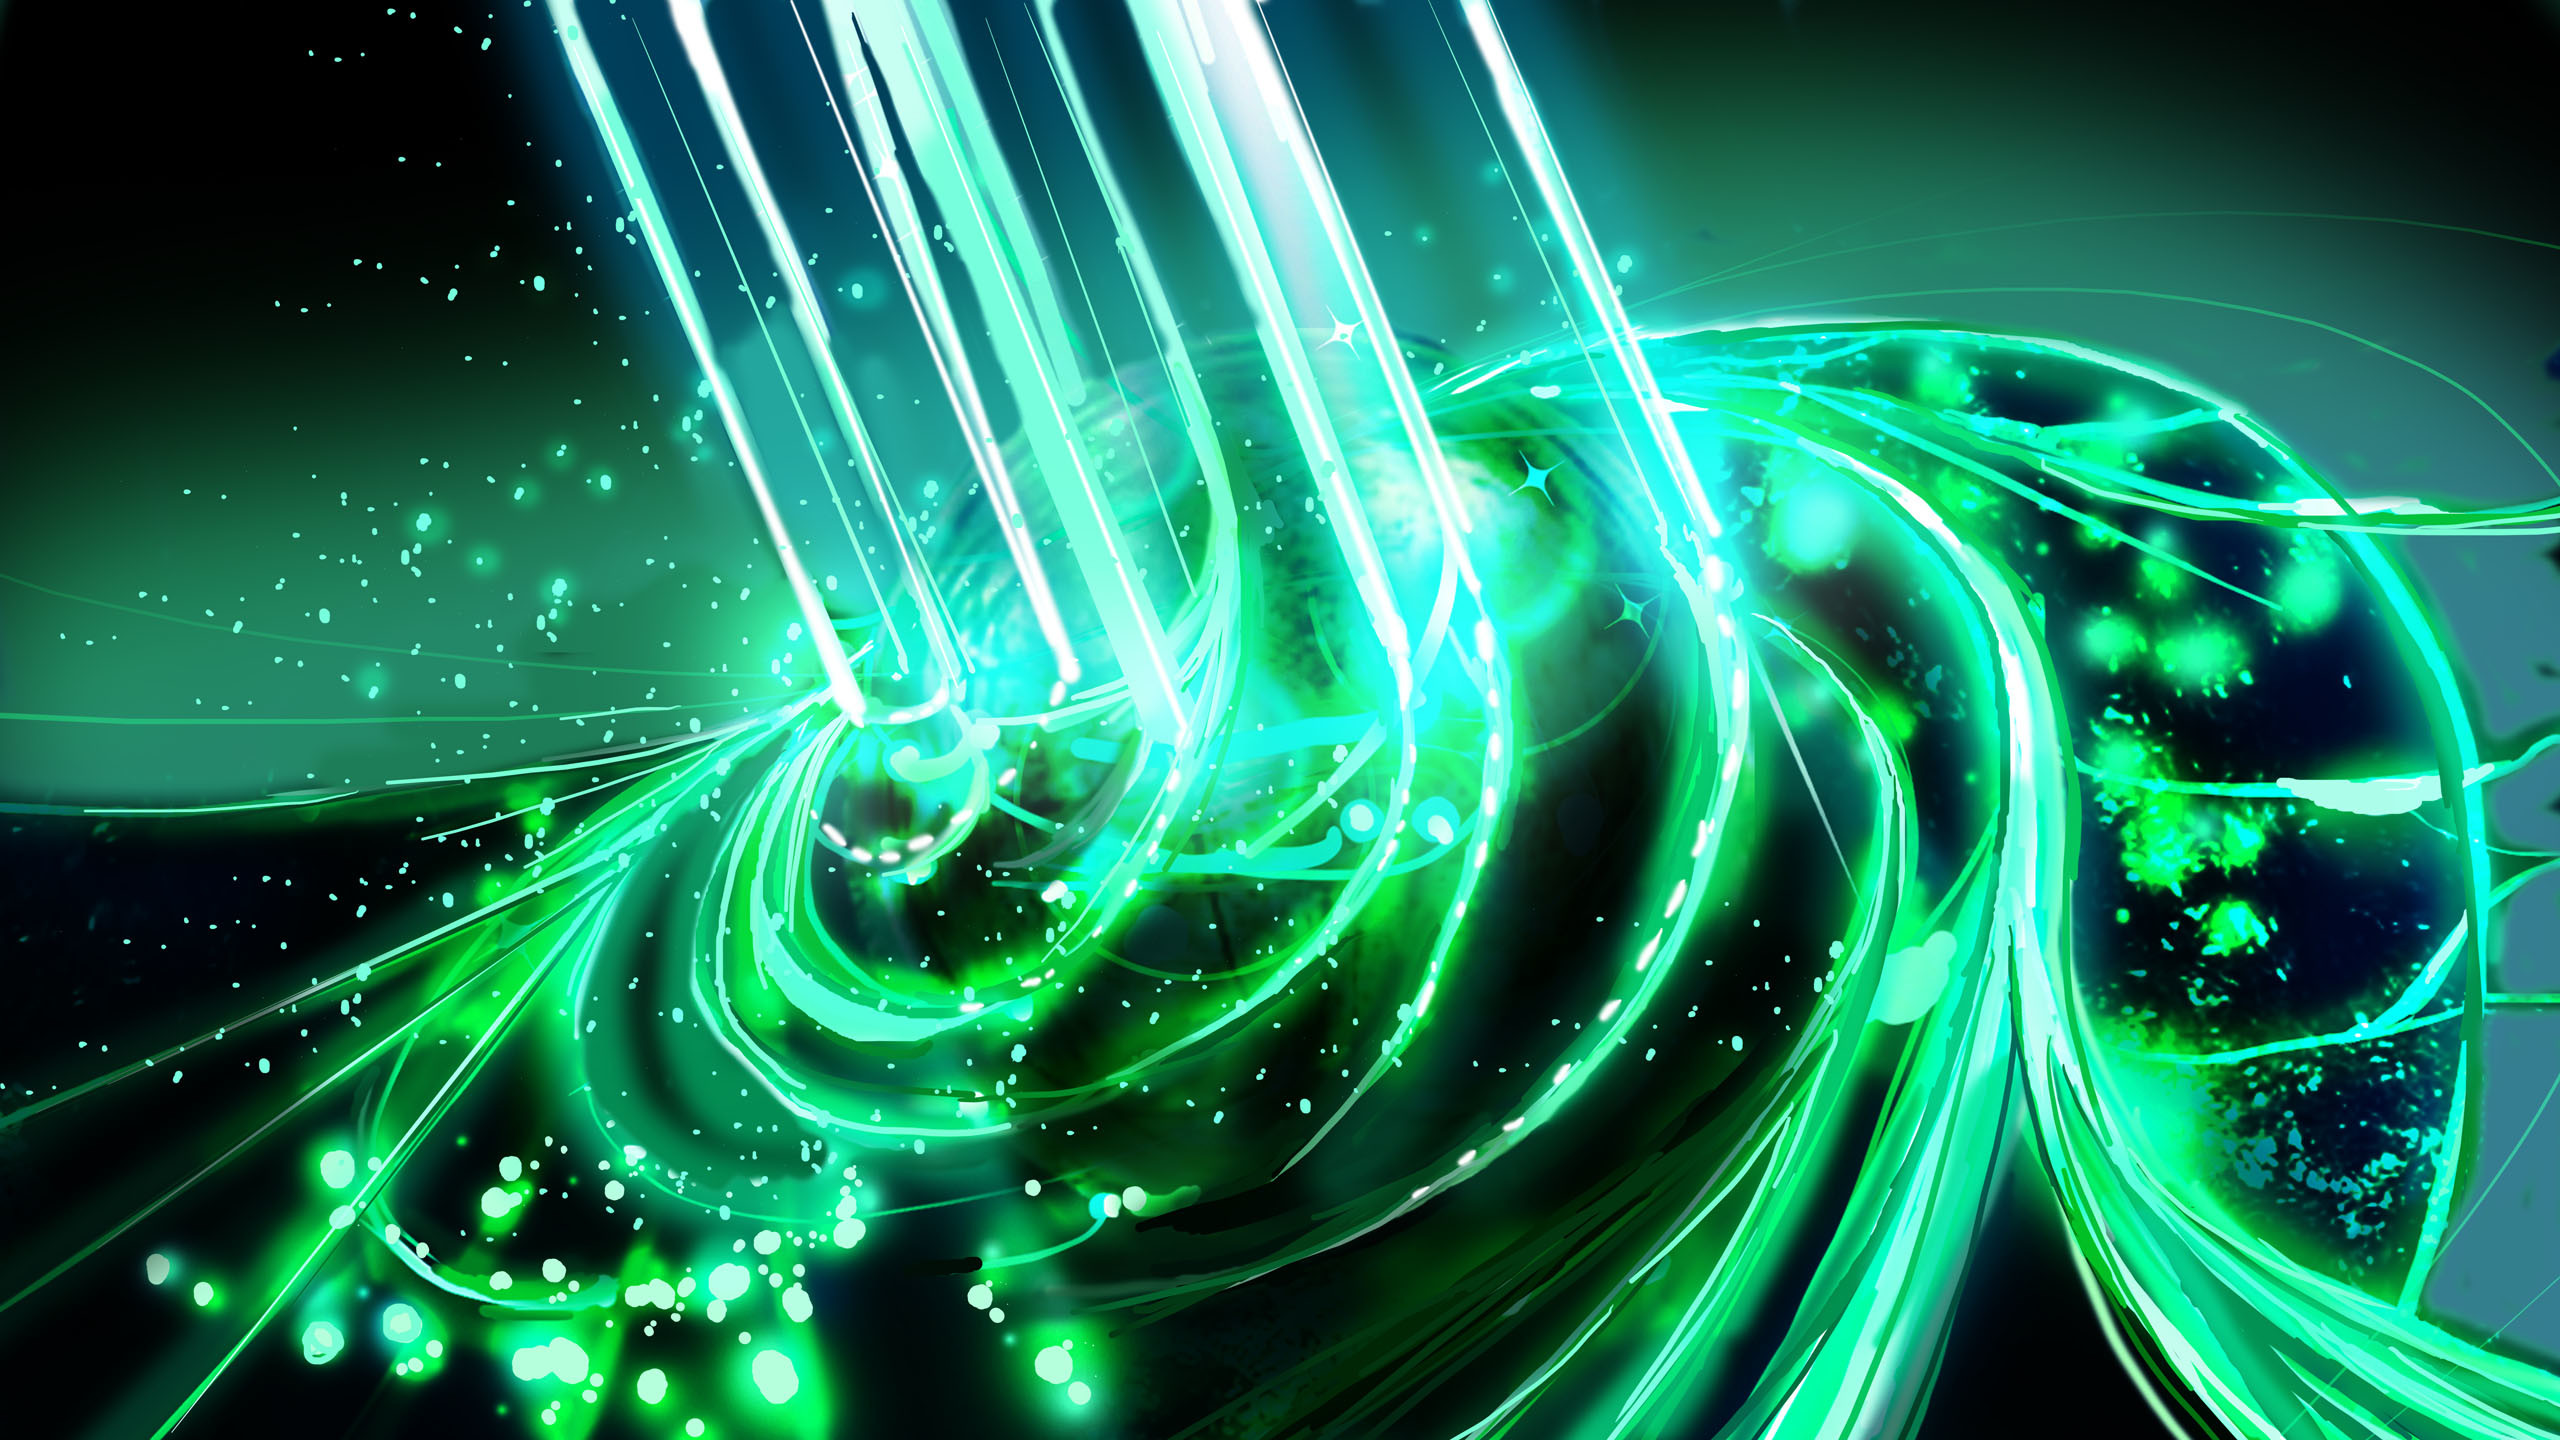 71 Emerald City Wallpapers on WallpaperPlay 2560x1440